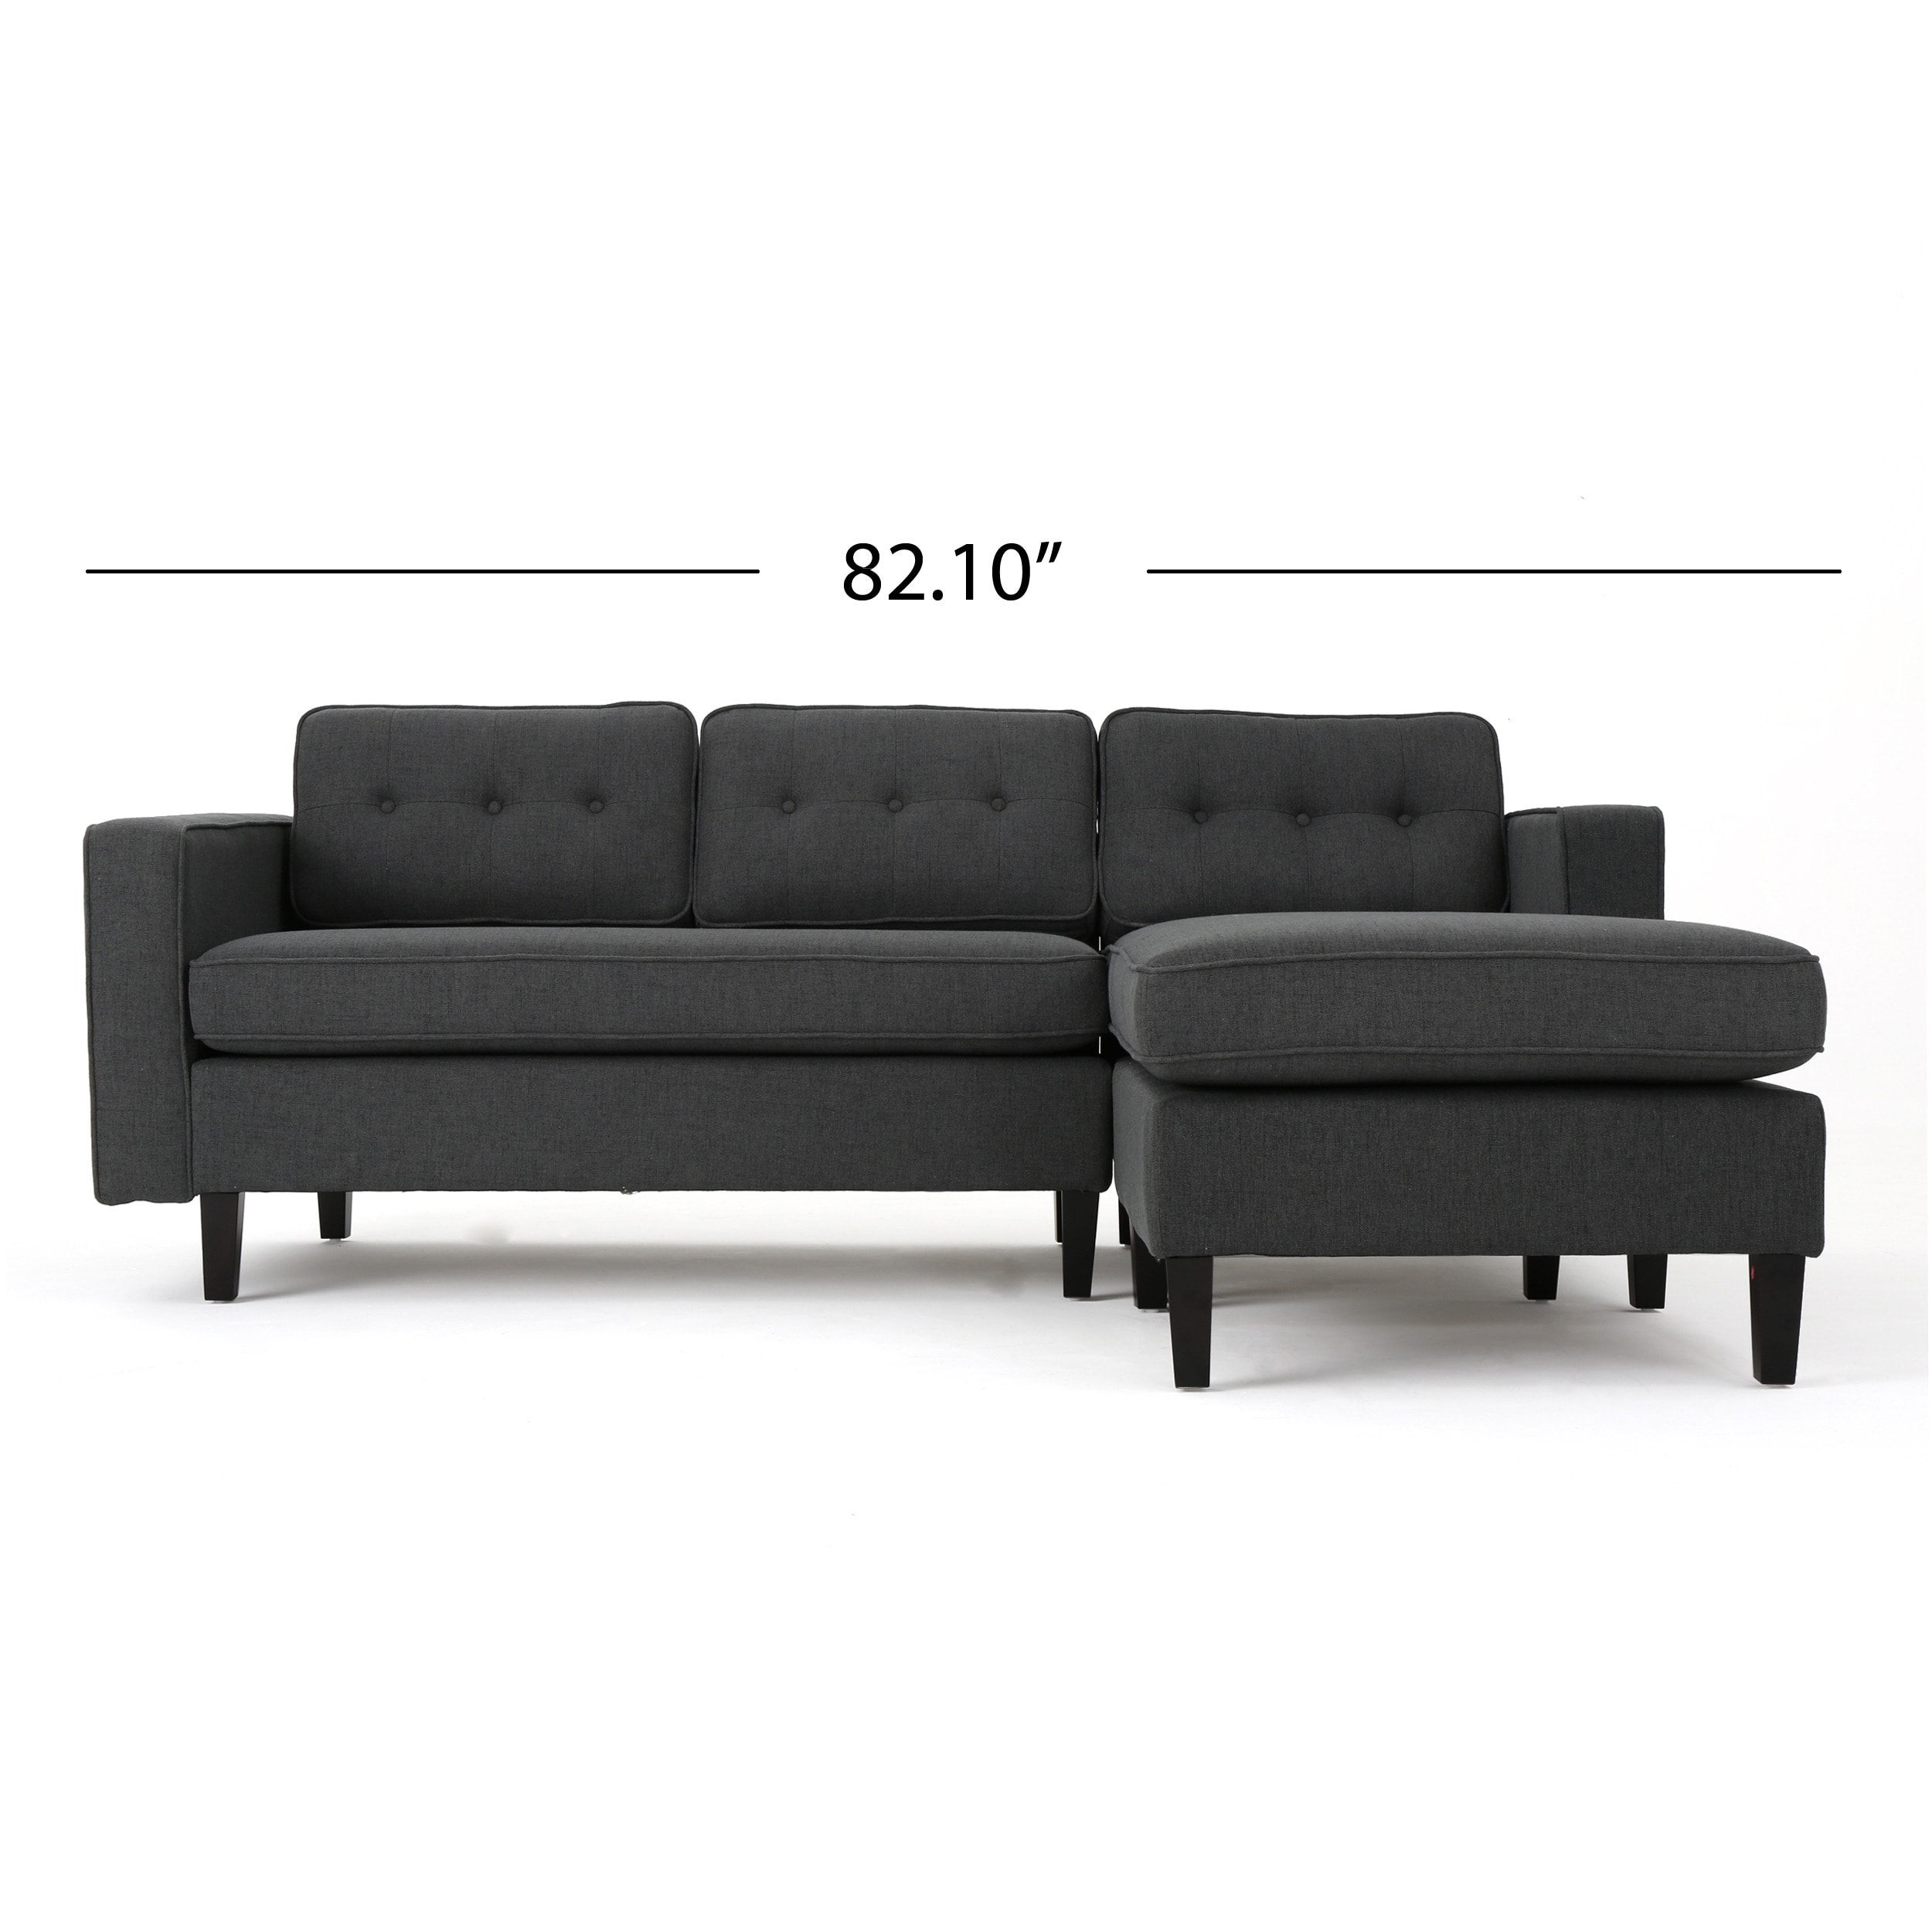 Shop Wilder Mid Century Modern 2 Piece Fabric Chaise Sectional Sofa By  Christopher Knight Home   On Sale   Free Shipping Today   Overstock.com    14675119